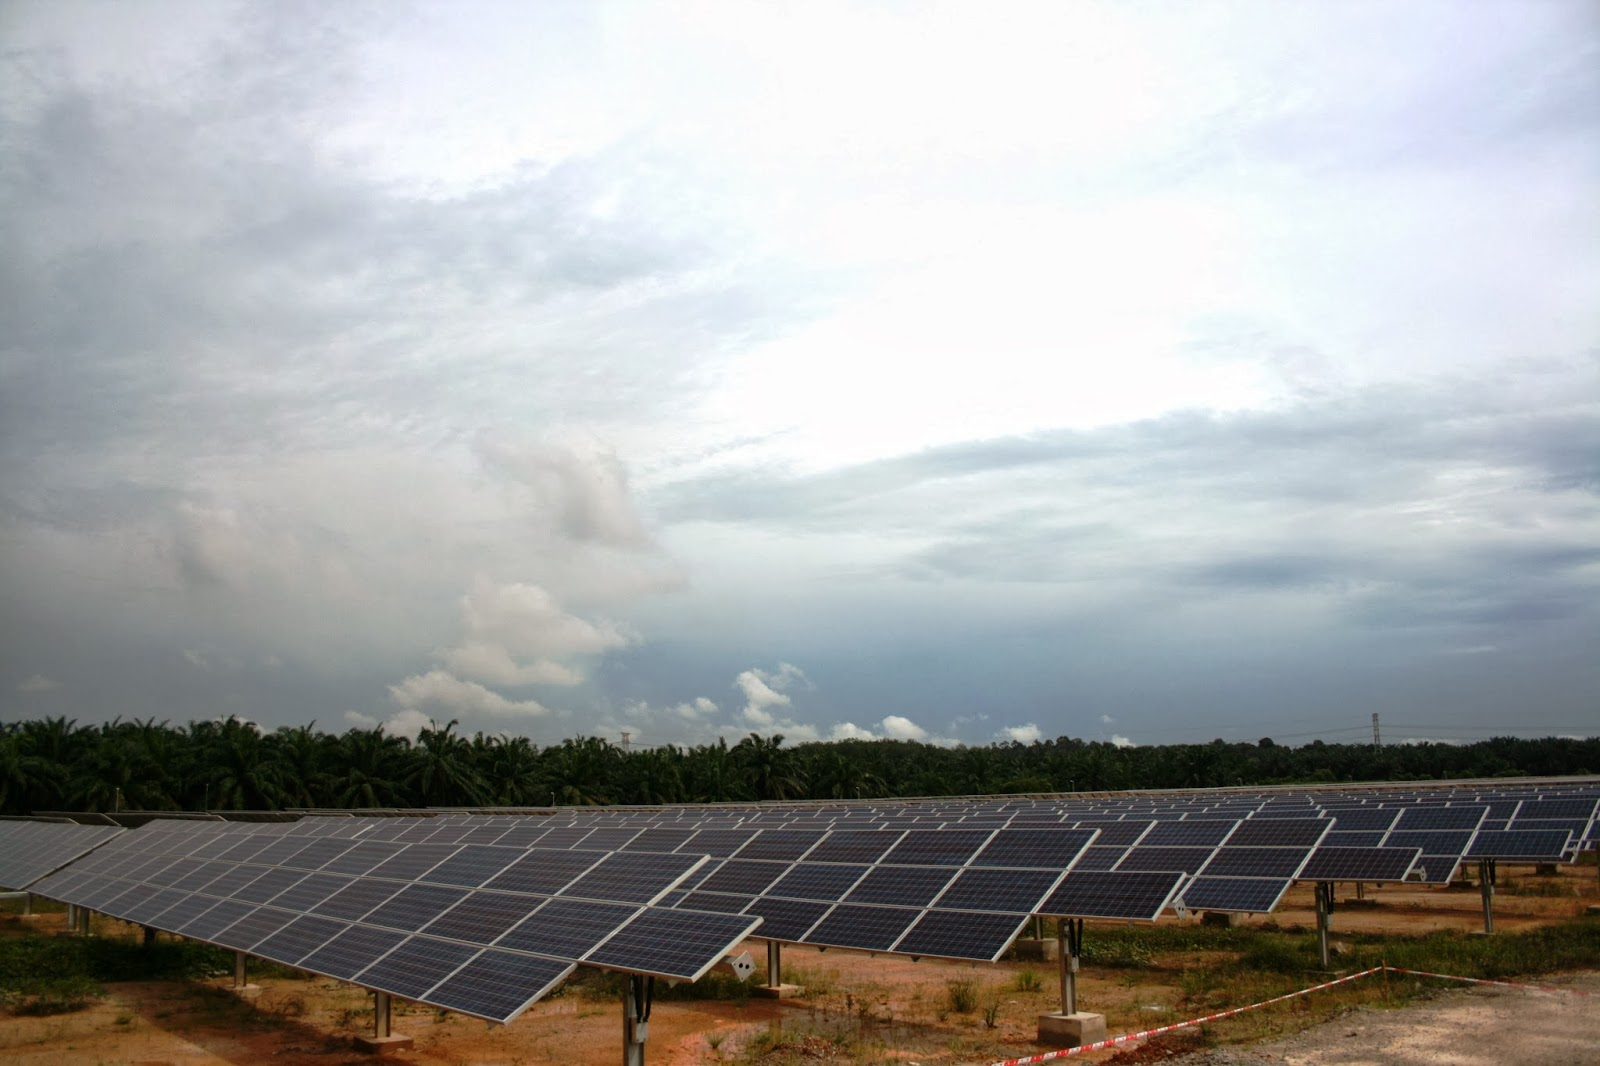 Solar Farm Malaysia This Solar Farm is Owned by